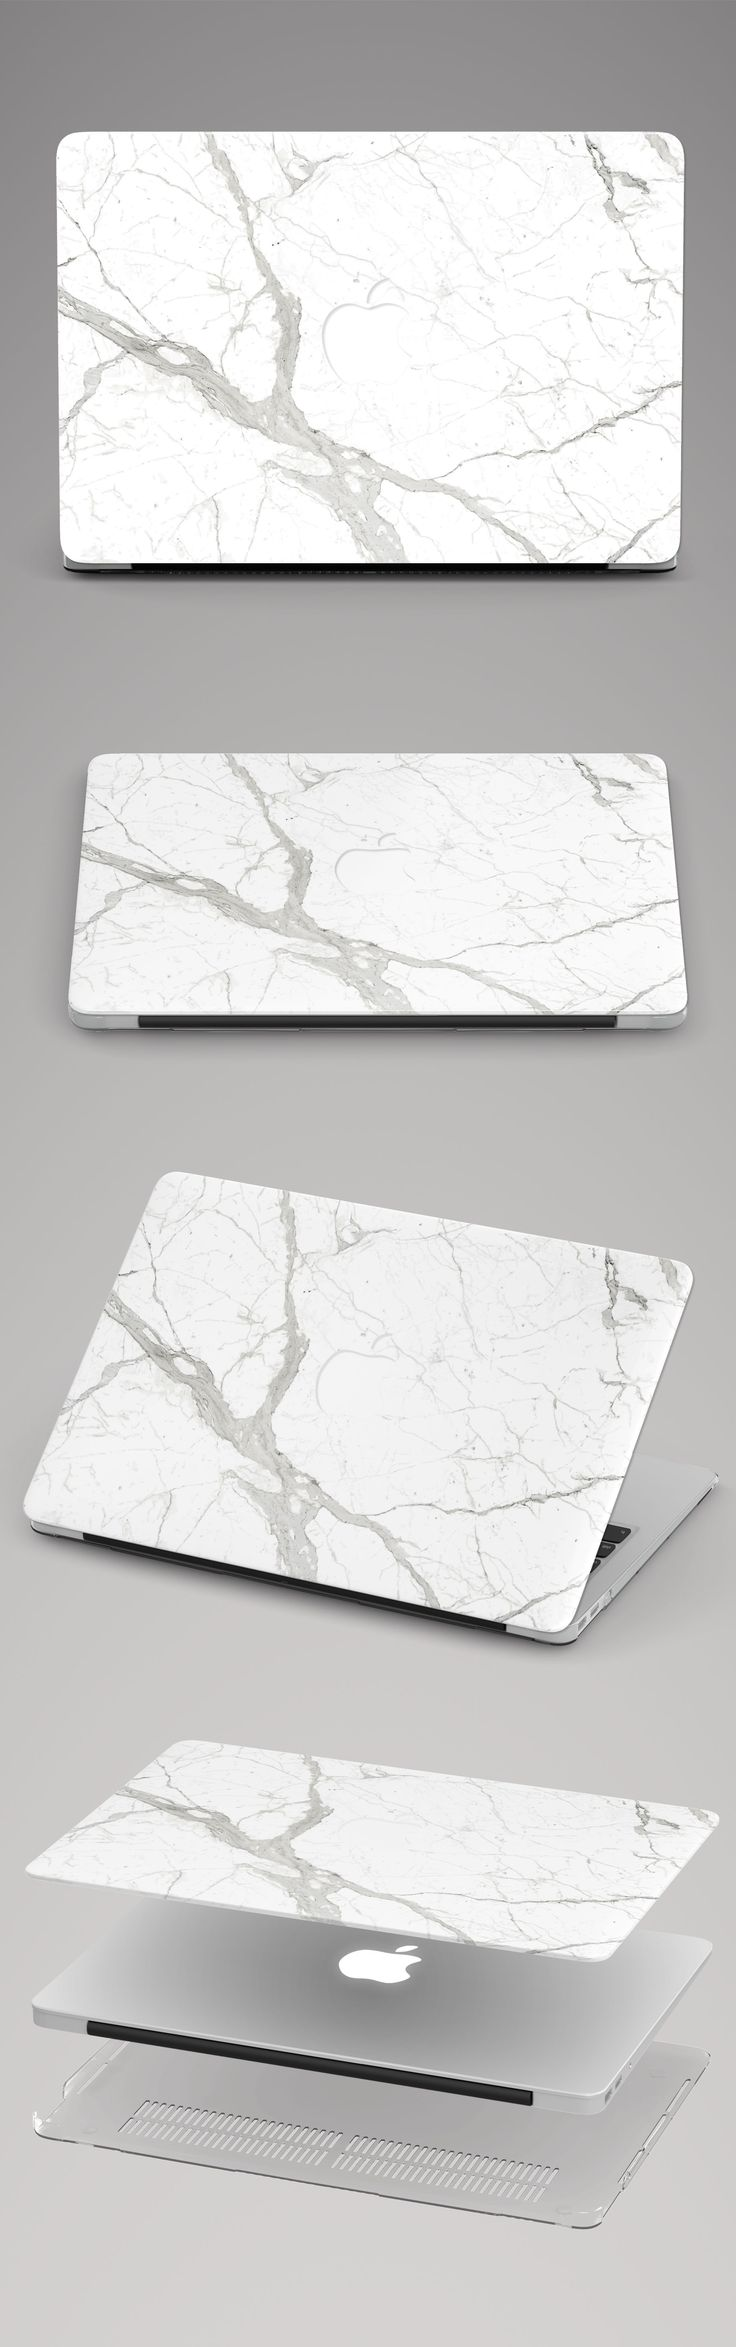 White Marble MacBook case hard case MacBook 12 case MacBook 13 MacBook 13 2017 case MacBook 15 Pro case macbook pro case macbook #marble #whitemarble #whitestone